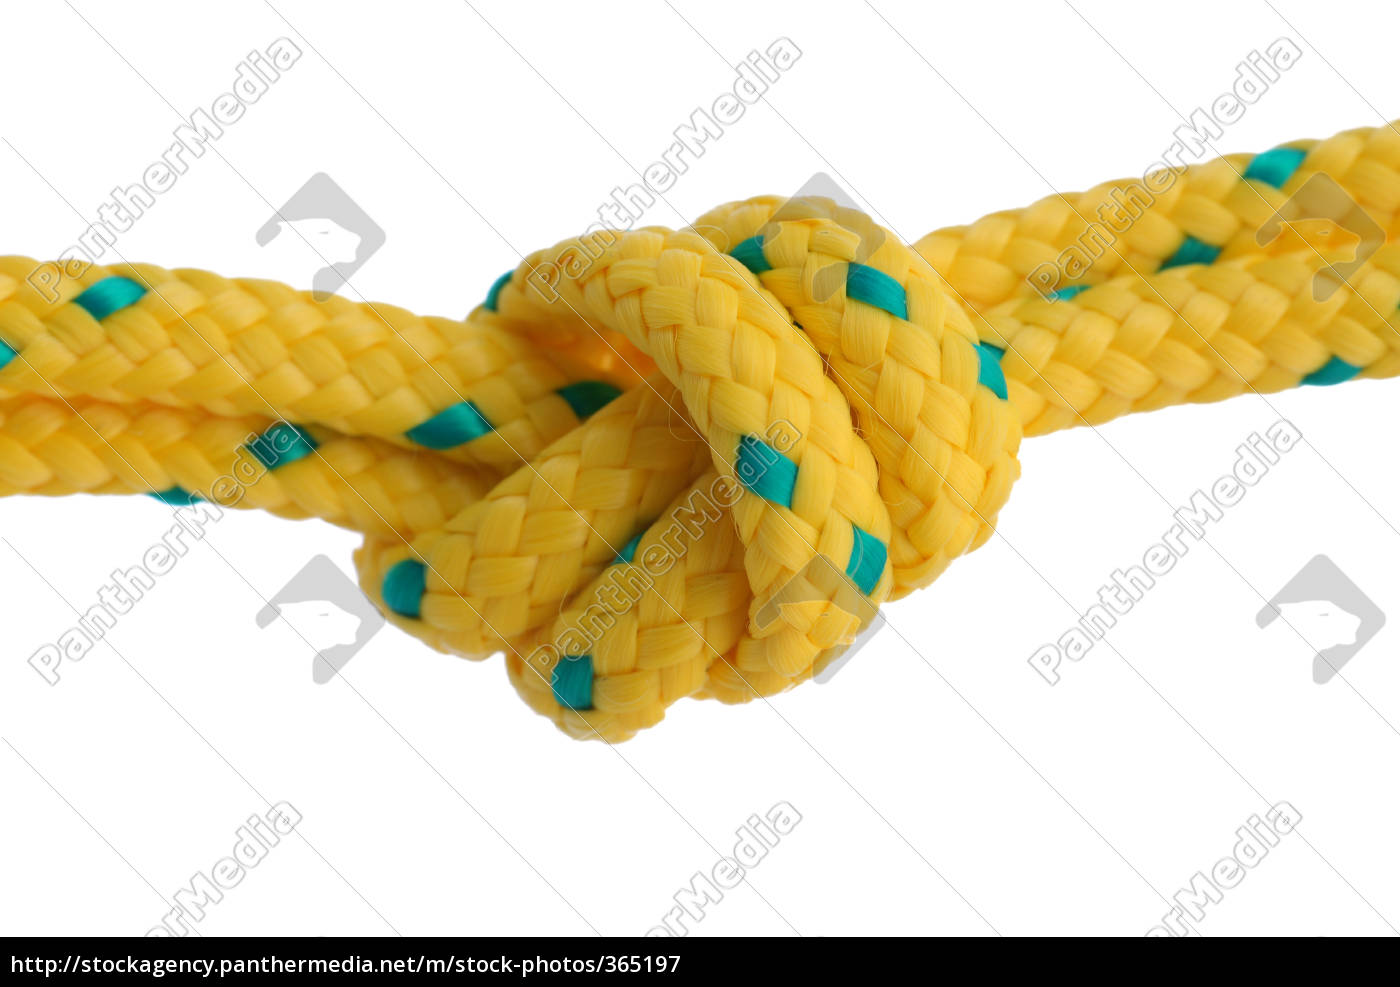 knotted - 365197